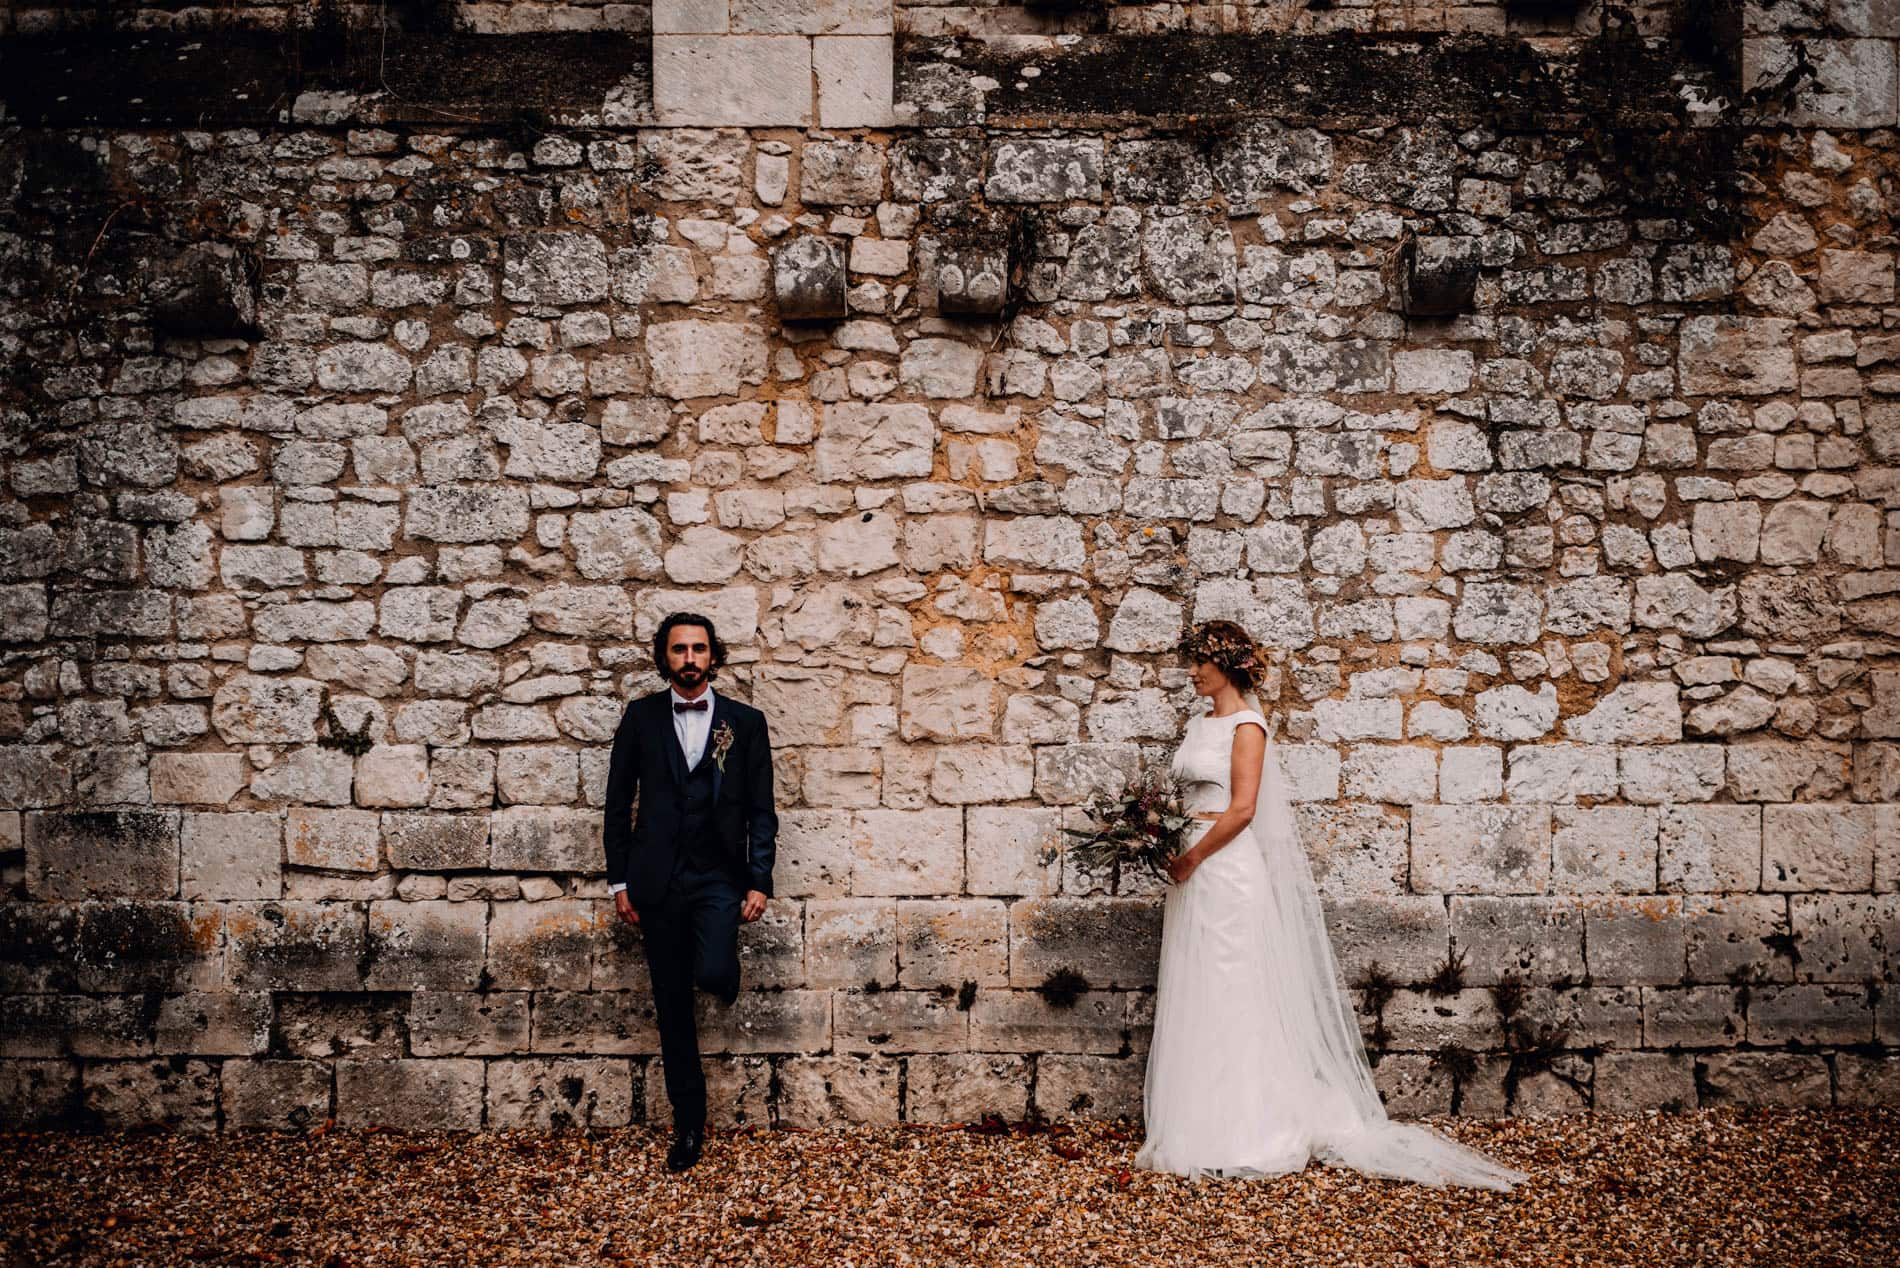 mariage-abbaye-fontaine-guerard-1